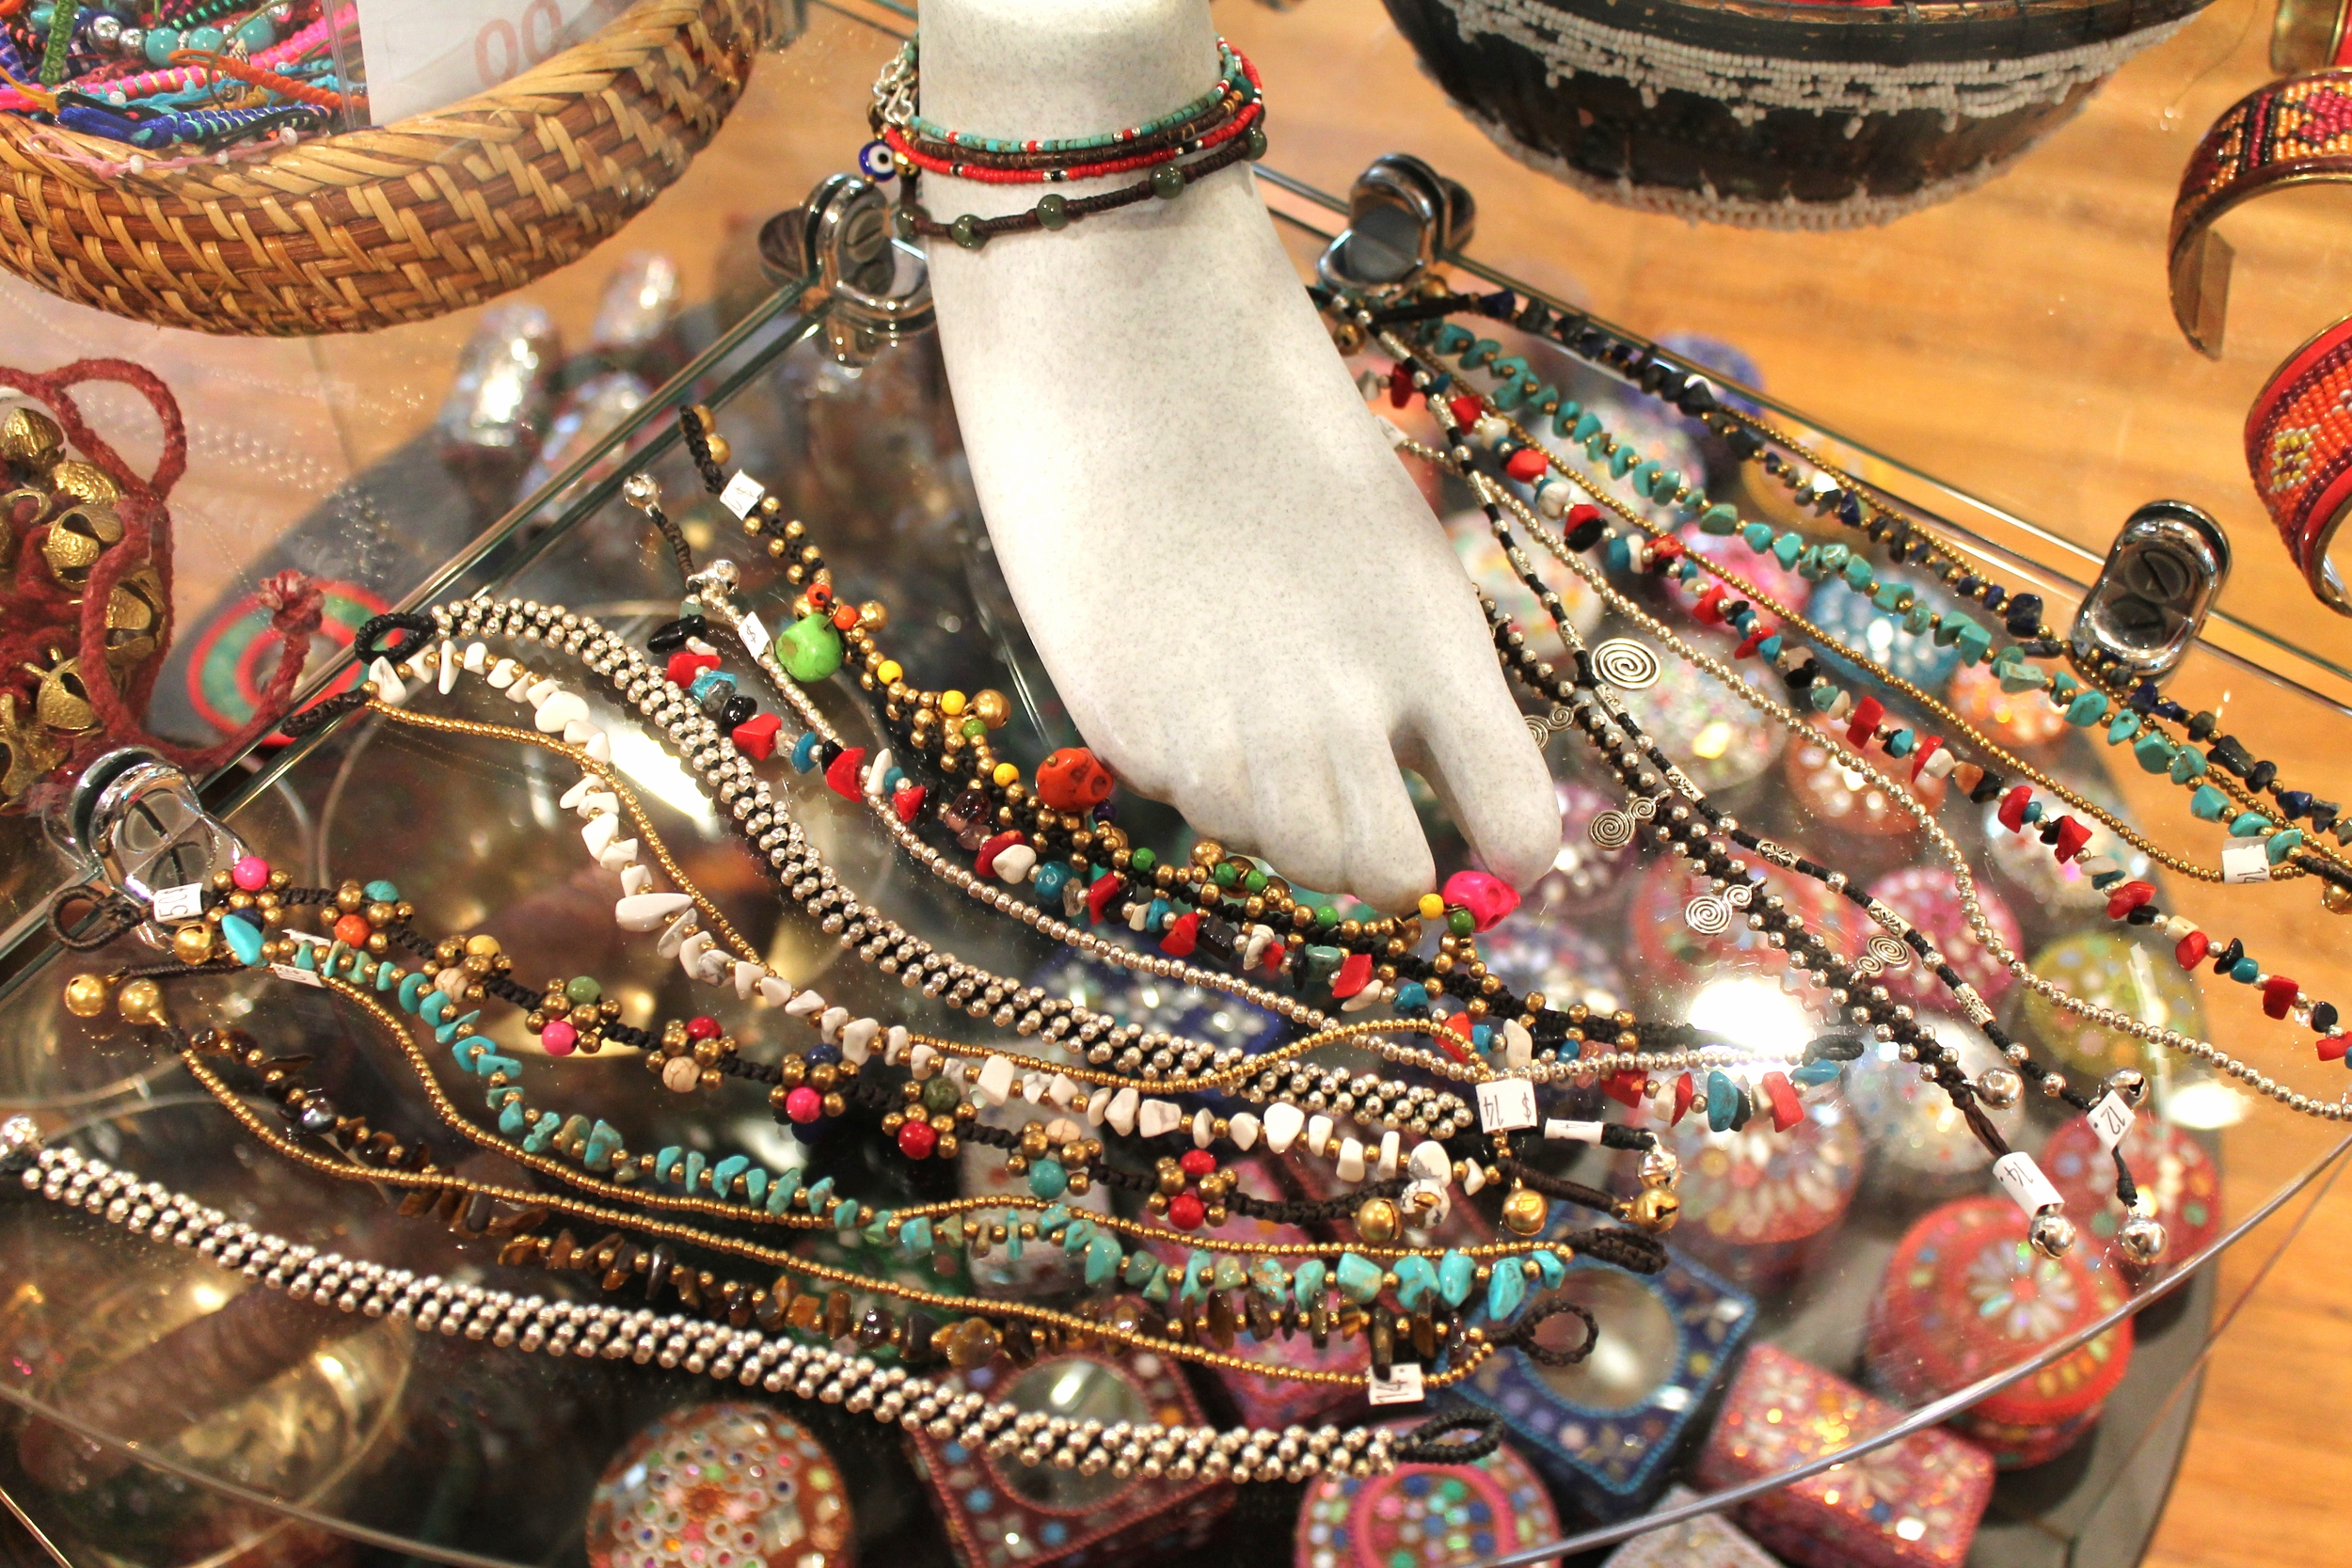 A festive array of stone and metal anklets from India and Thailand.